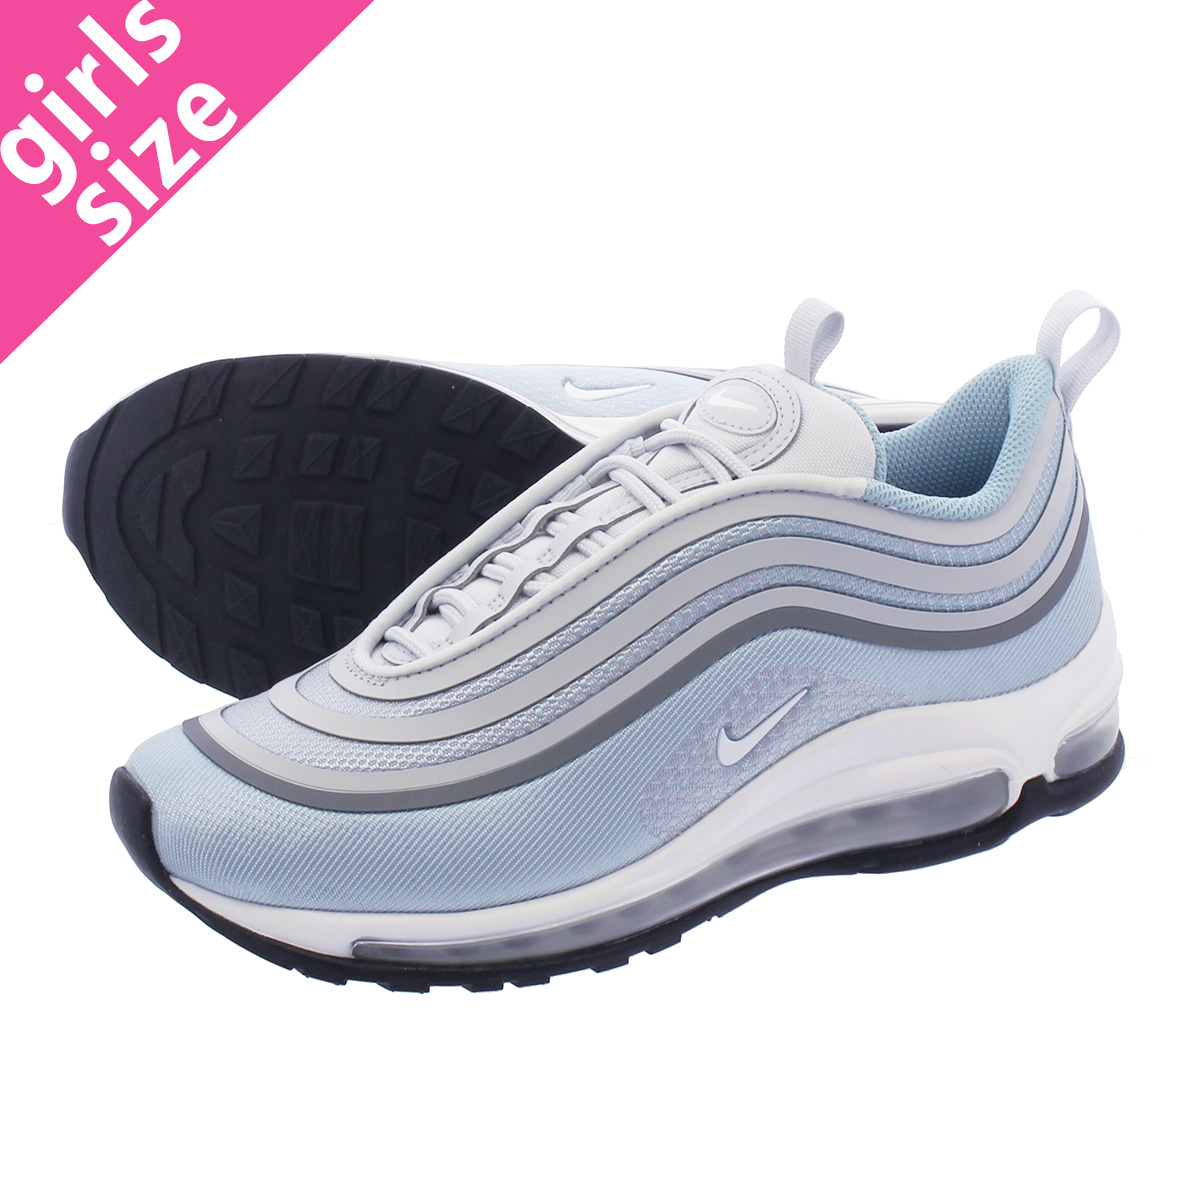 huge selection of adfaf 62473 LOWTEX PLUS: NIKE AIR MAX 97 ULTRA '17 GS Kie Ney AMAX 97 ultra 17 ...